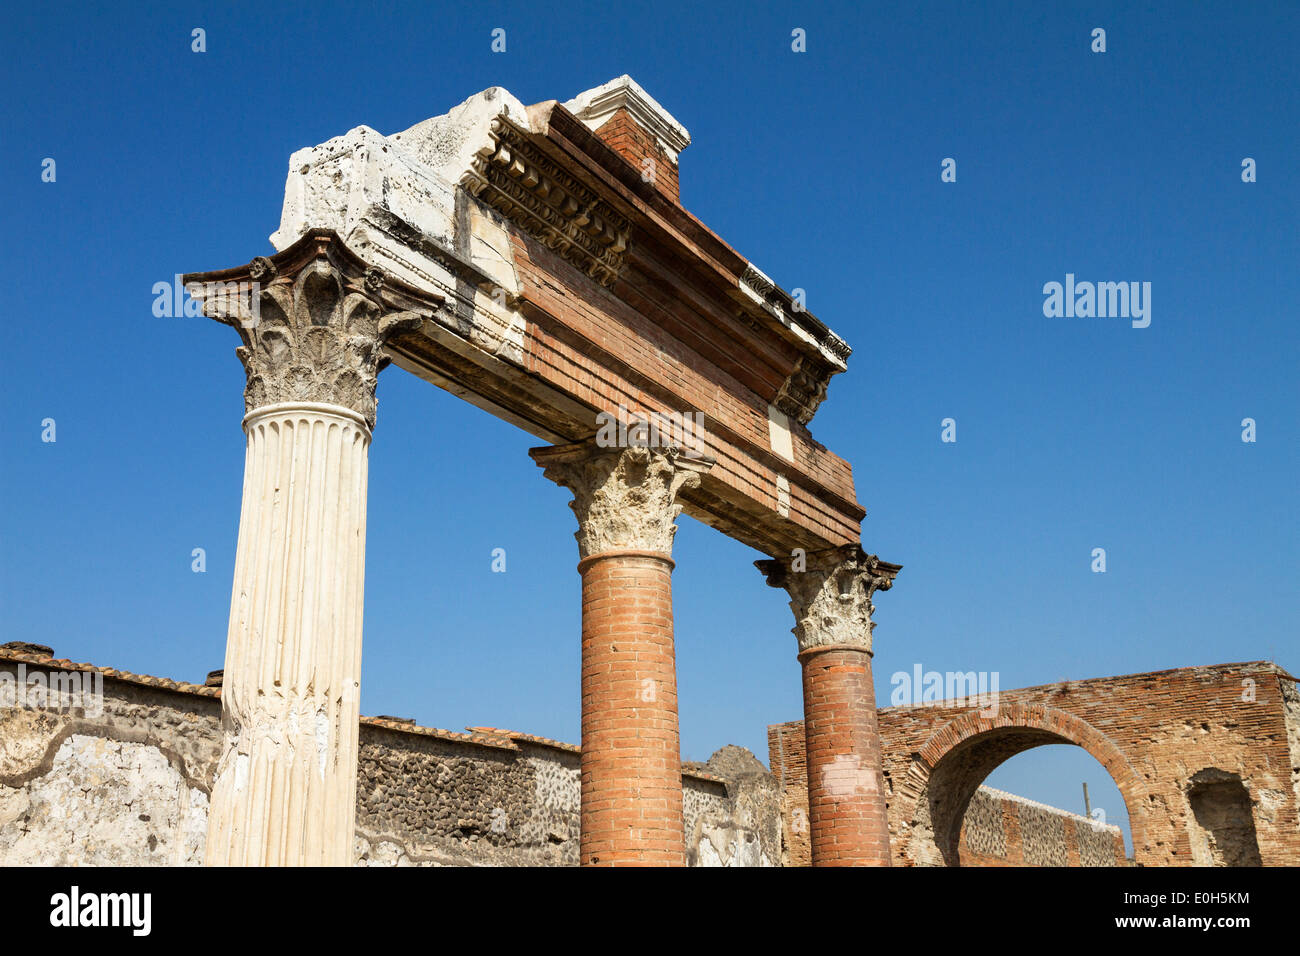 Corinthian columns at the temple of Jupiter, via del foro, historic town of Pompeii in the Gulf of Naples, Italy, Europe - Stock Image